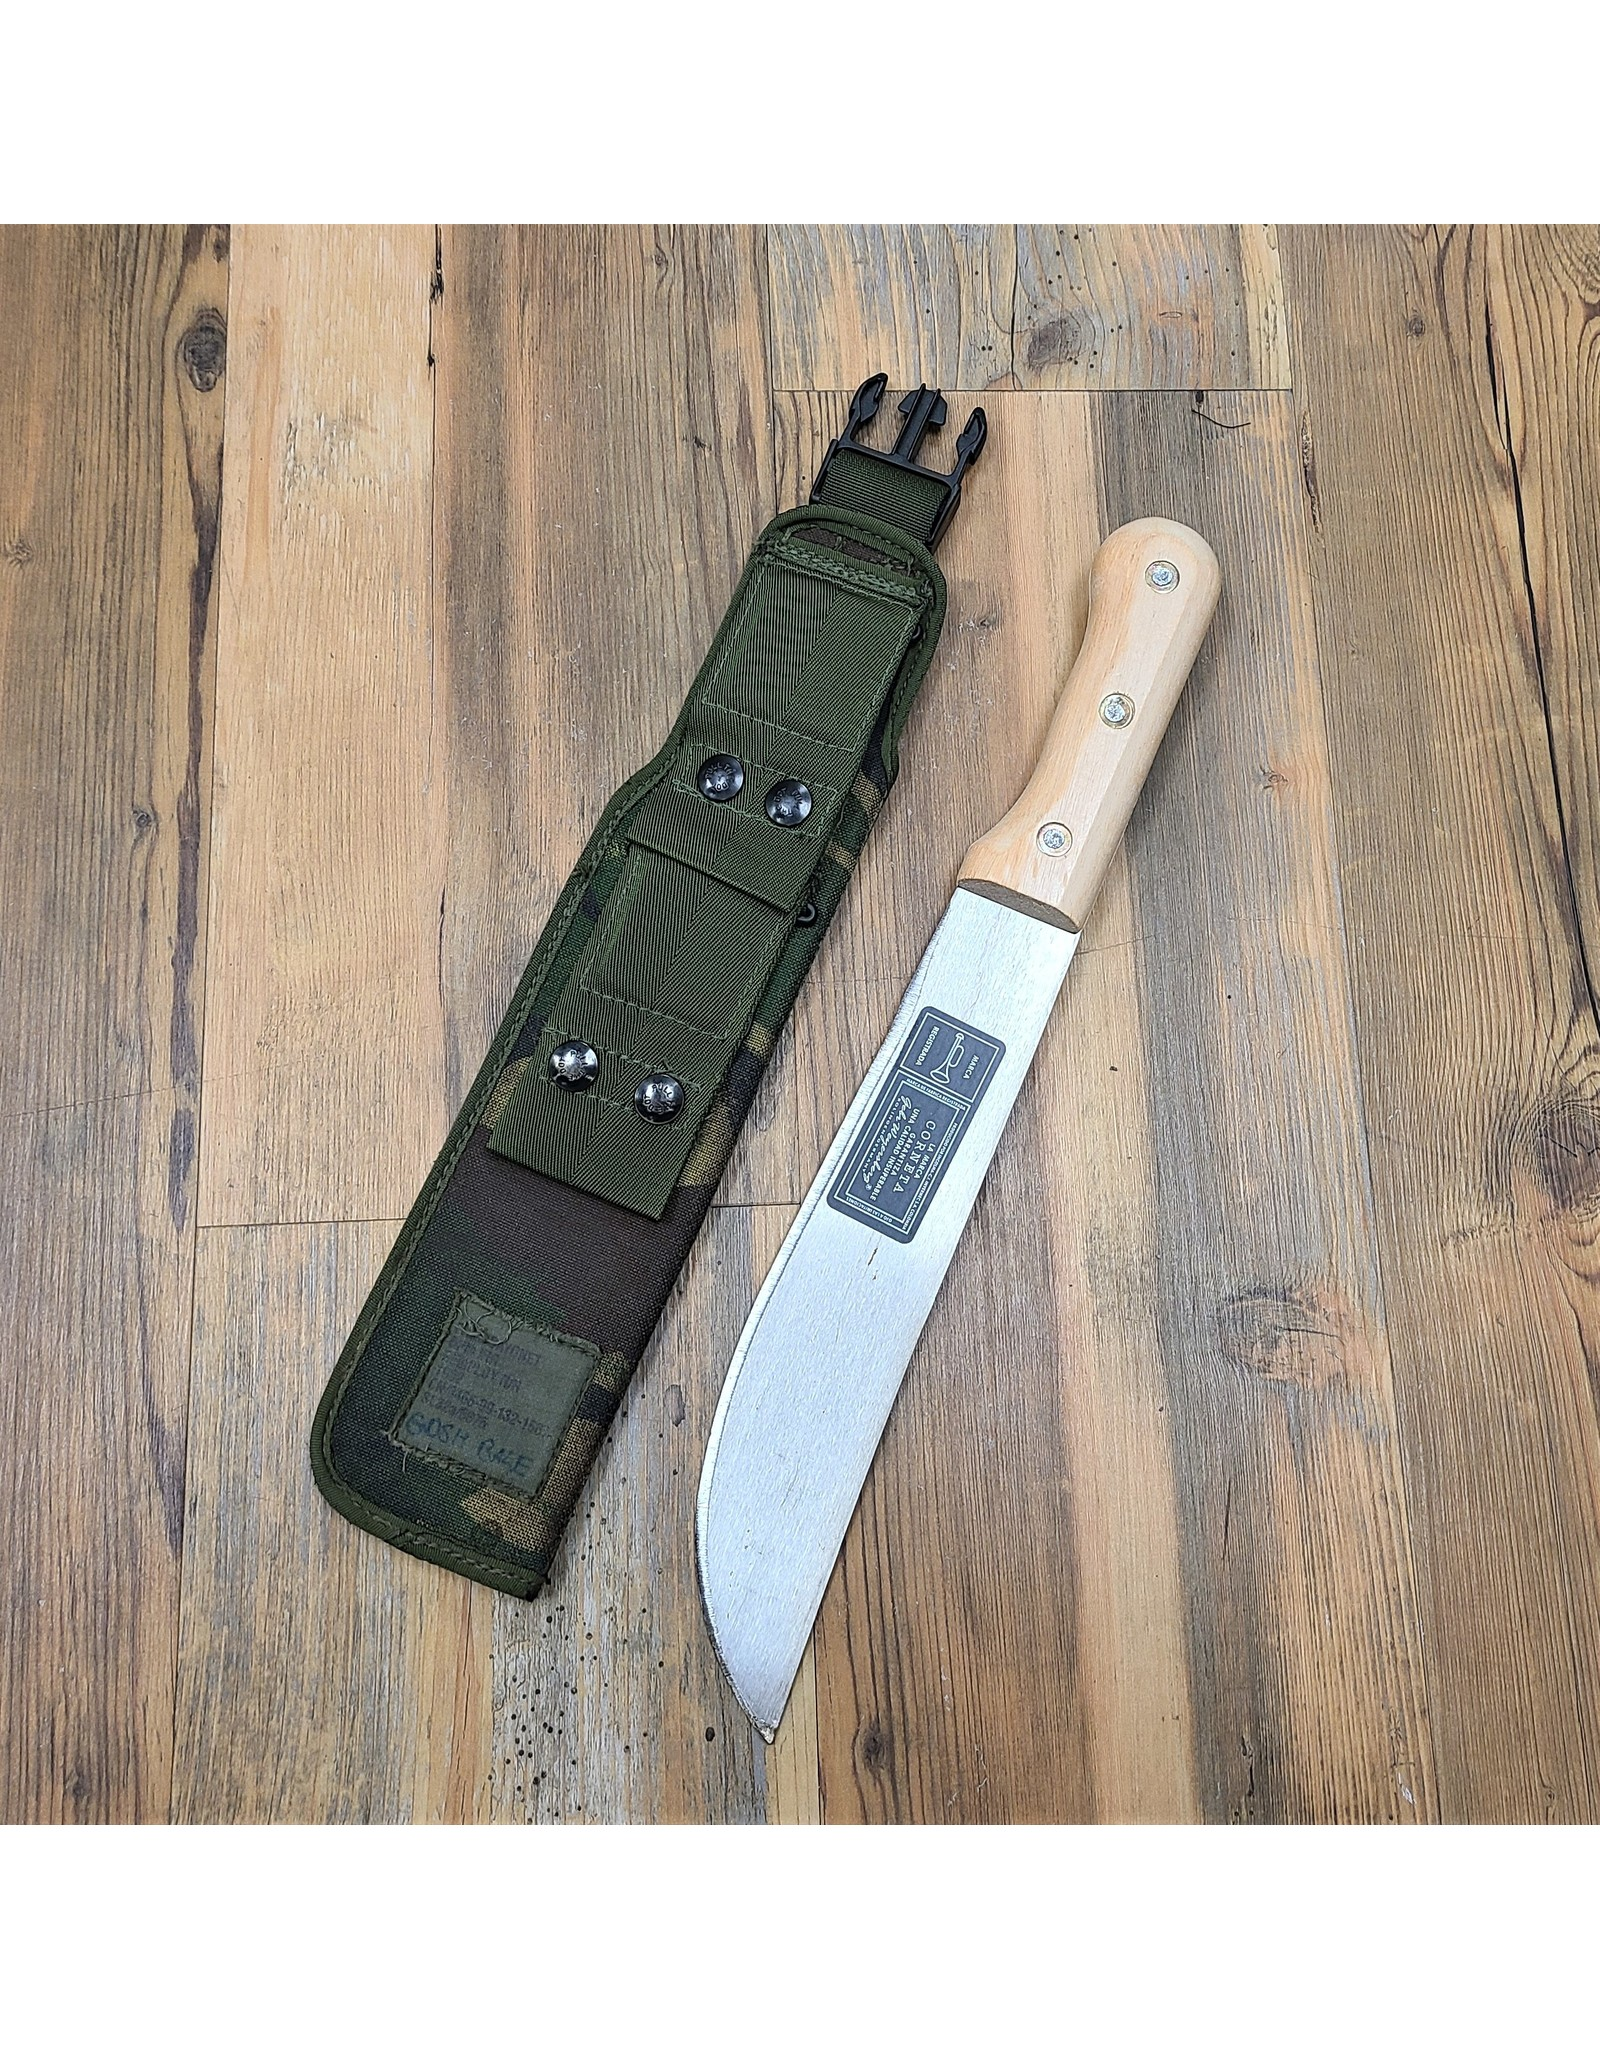 MAJOR SURPLUS MACHETE W/ BRITISH SHEATH